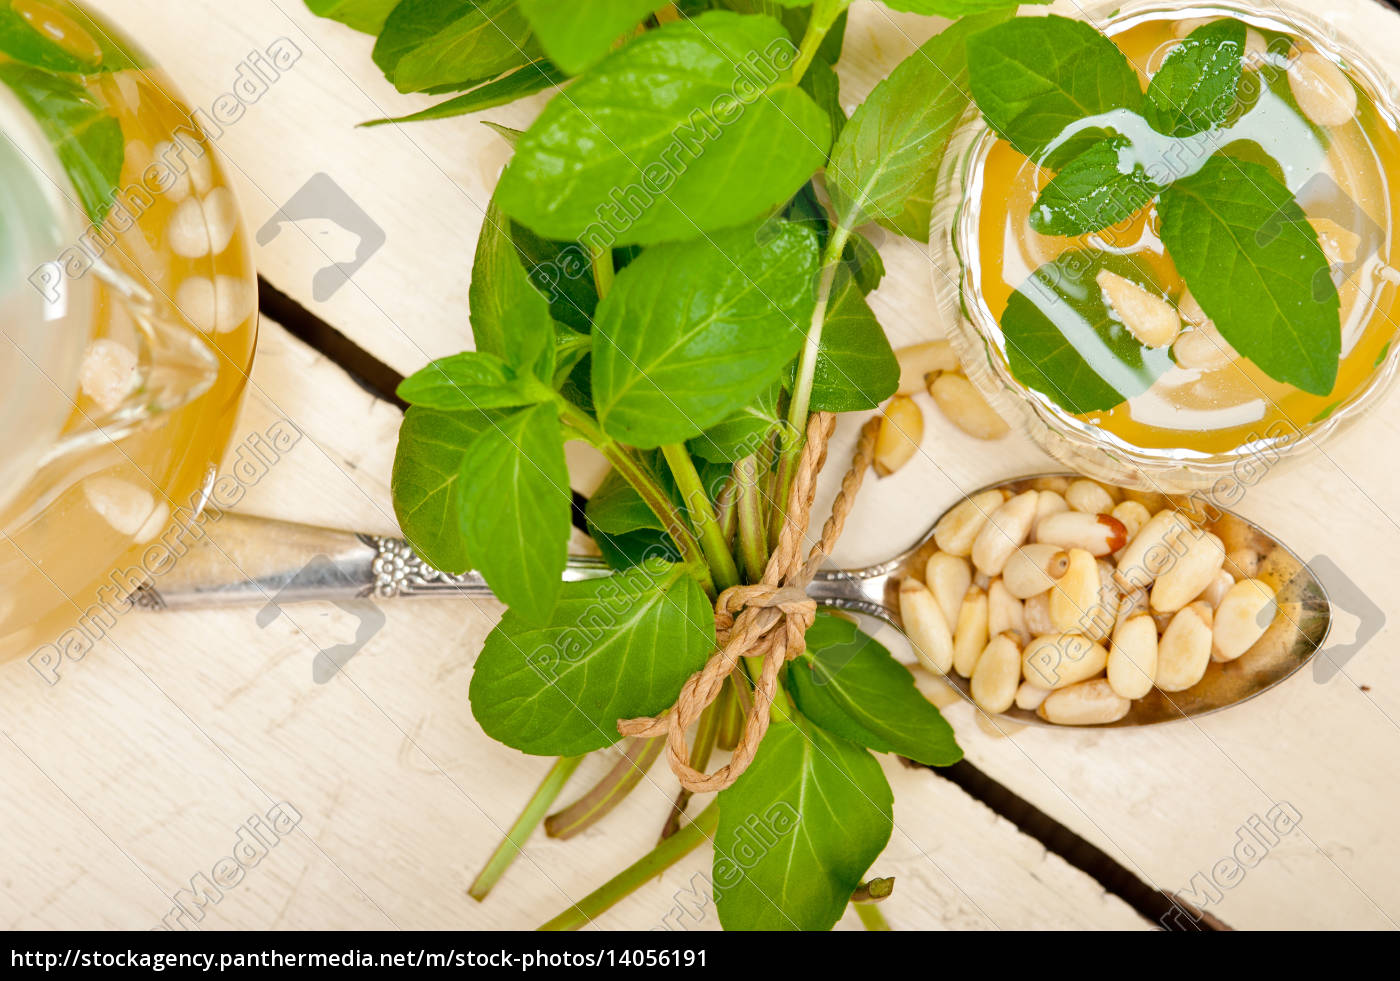 arab, traditional, mint, and, pine, nuts - 14056191